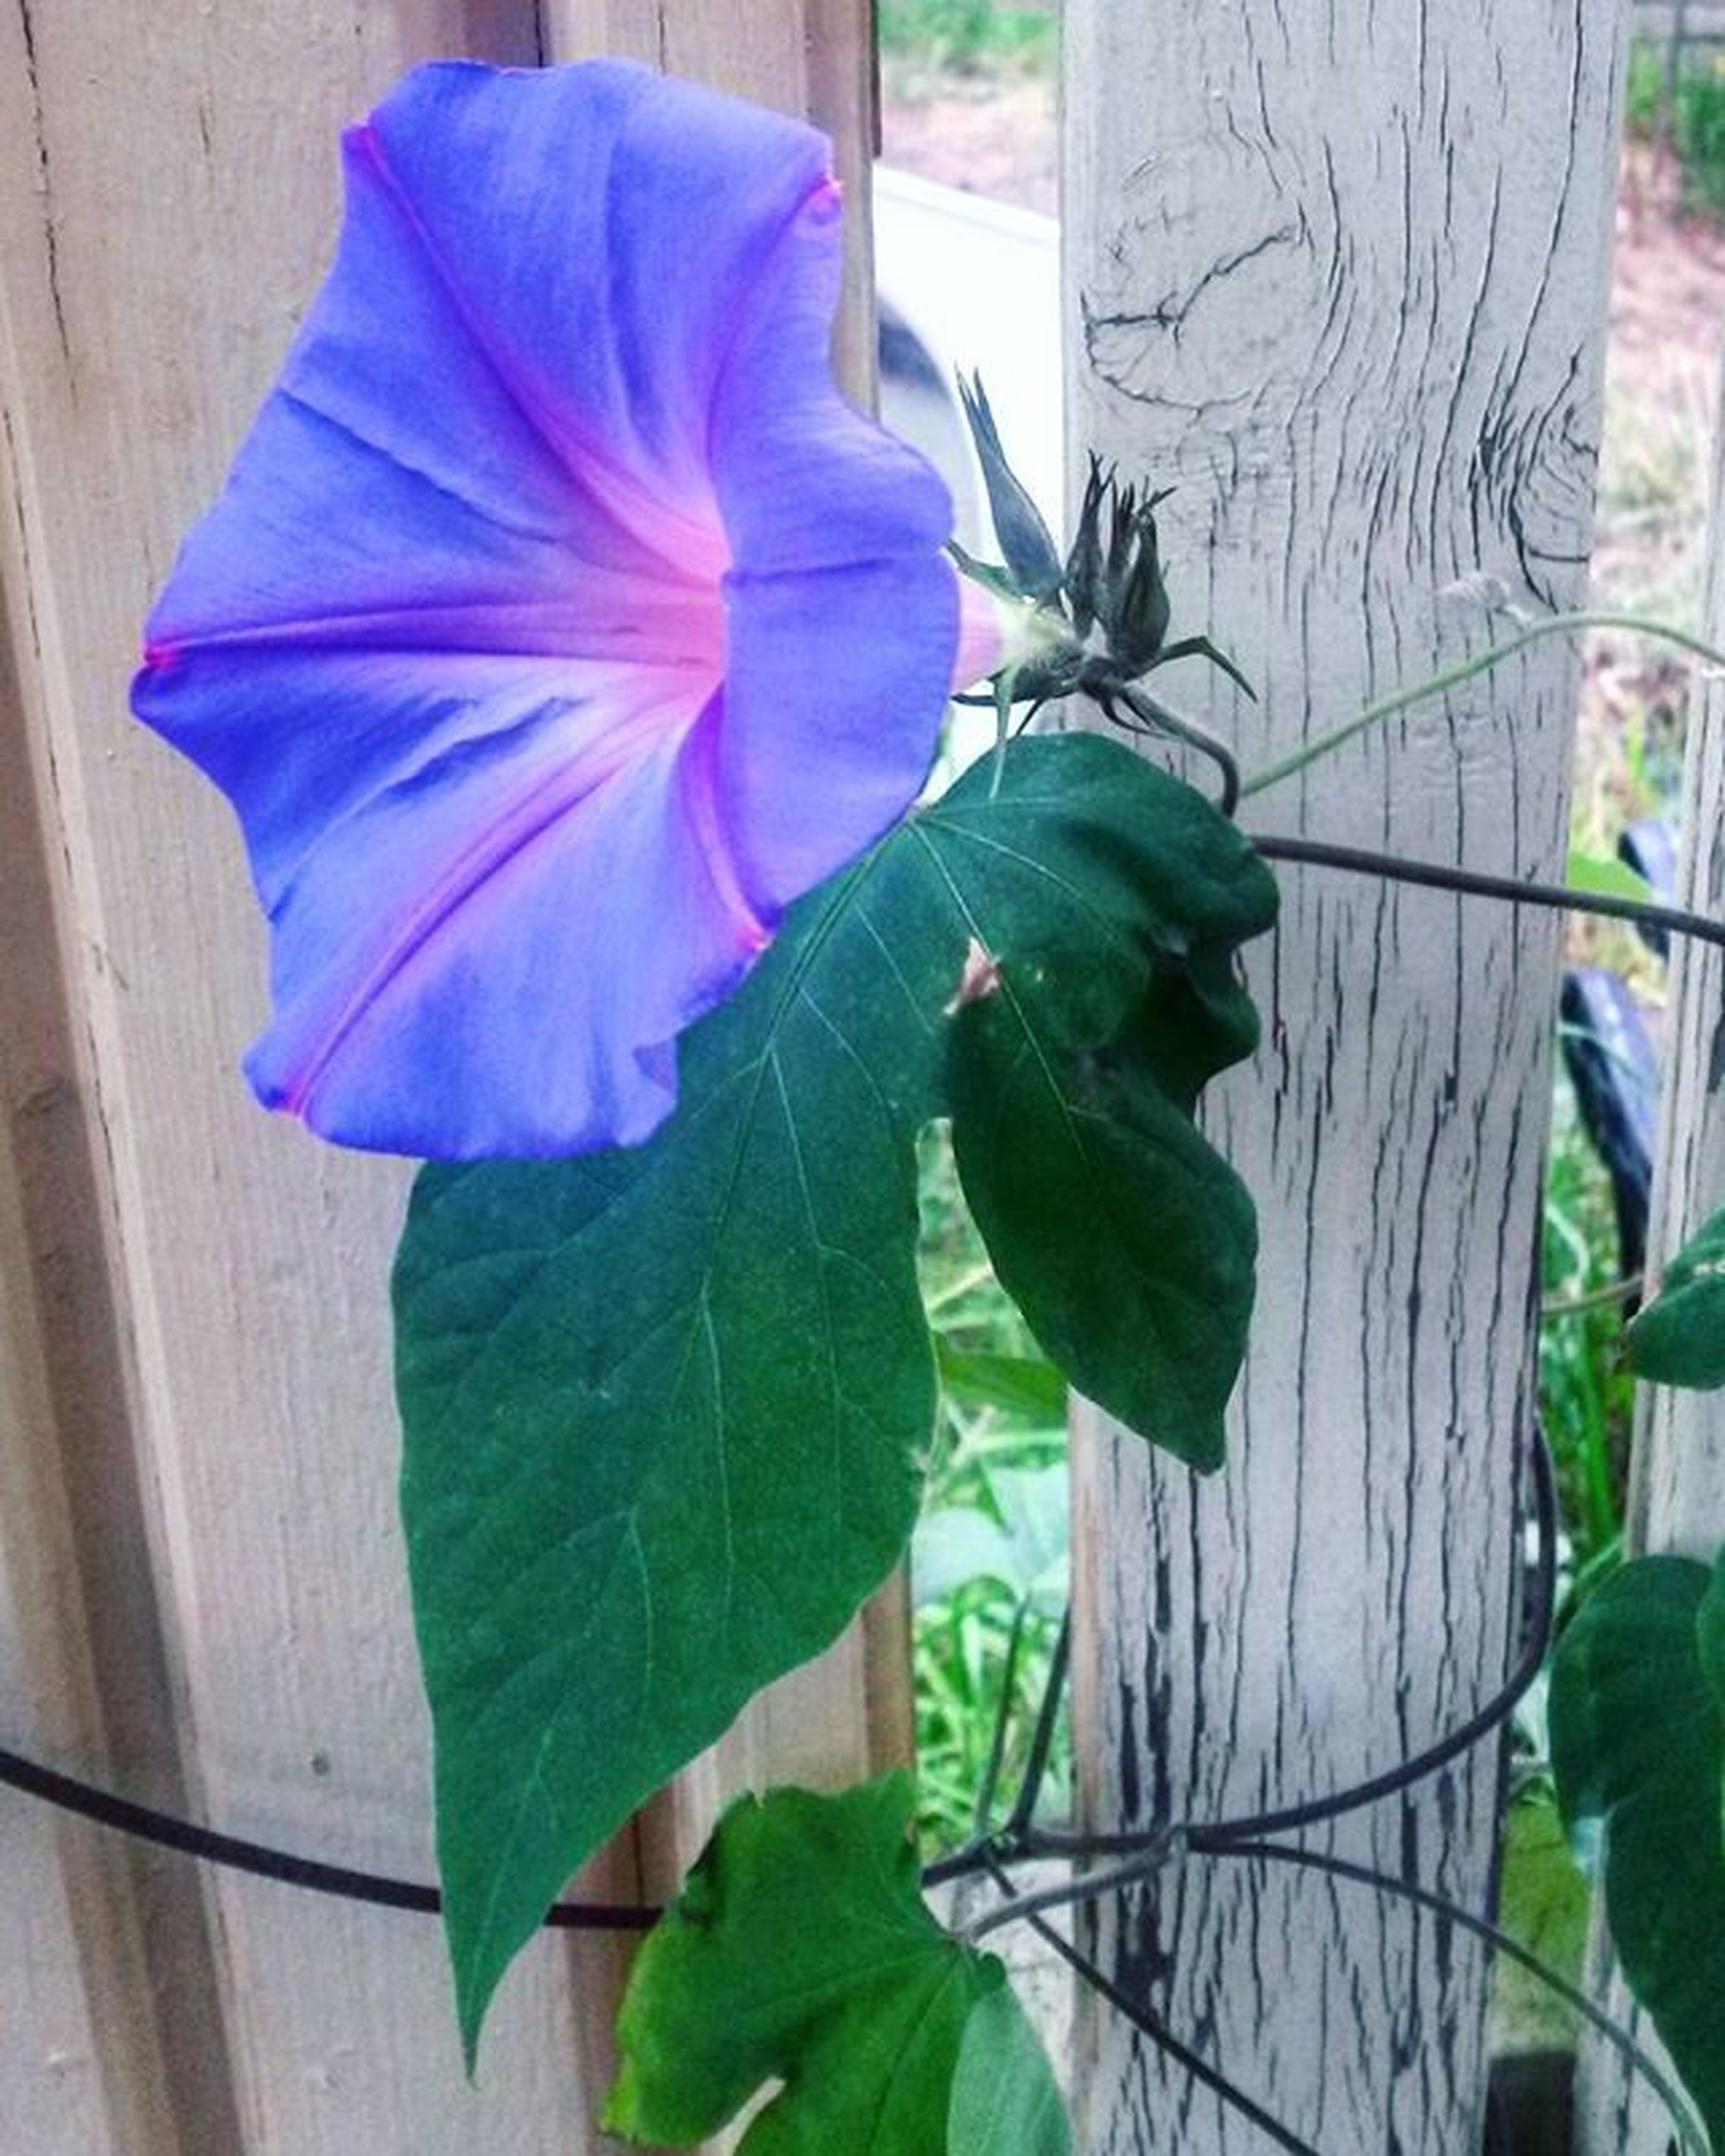 I spent the better part of my train ride wondering if this was a lily or morning glory. 😂😂 Oops Lilyormorningglory Dontknowmyflowers Everymorningyougreetme Flower Purple